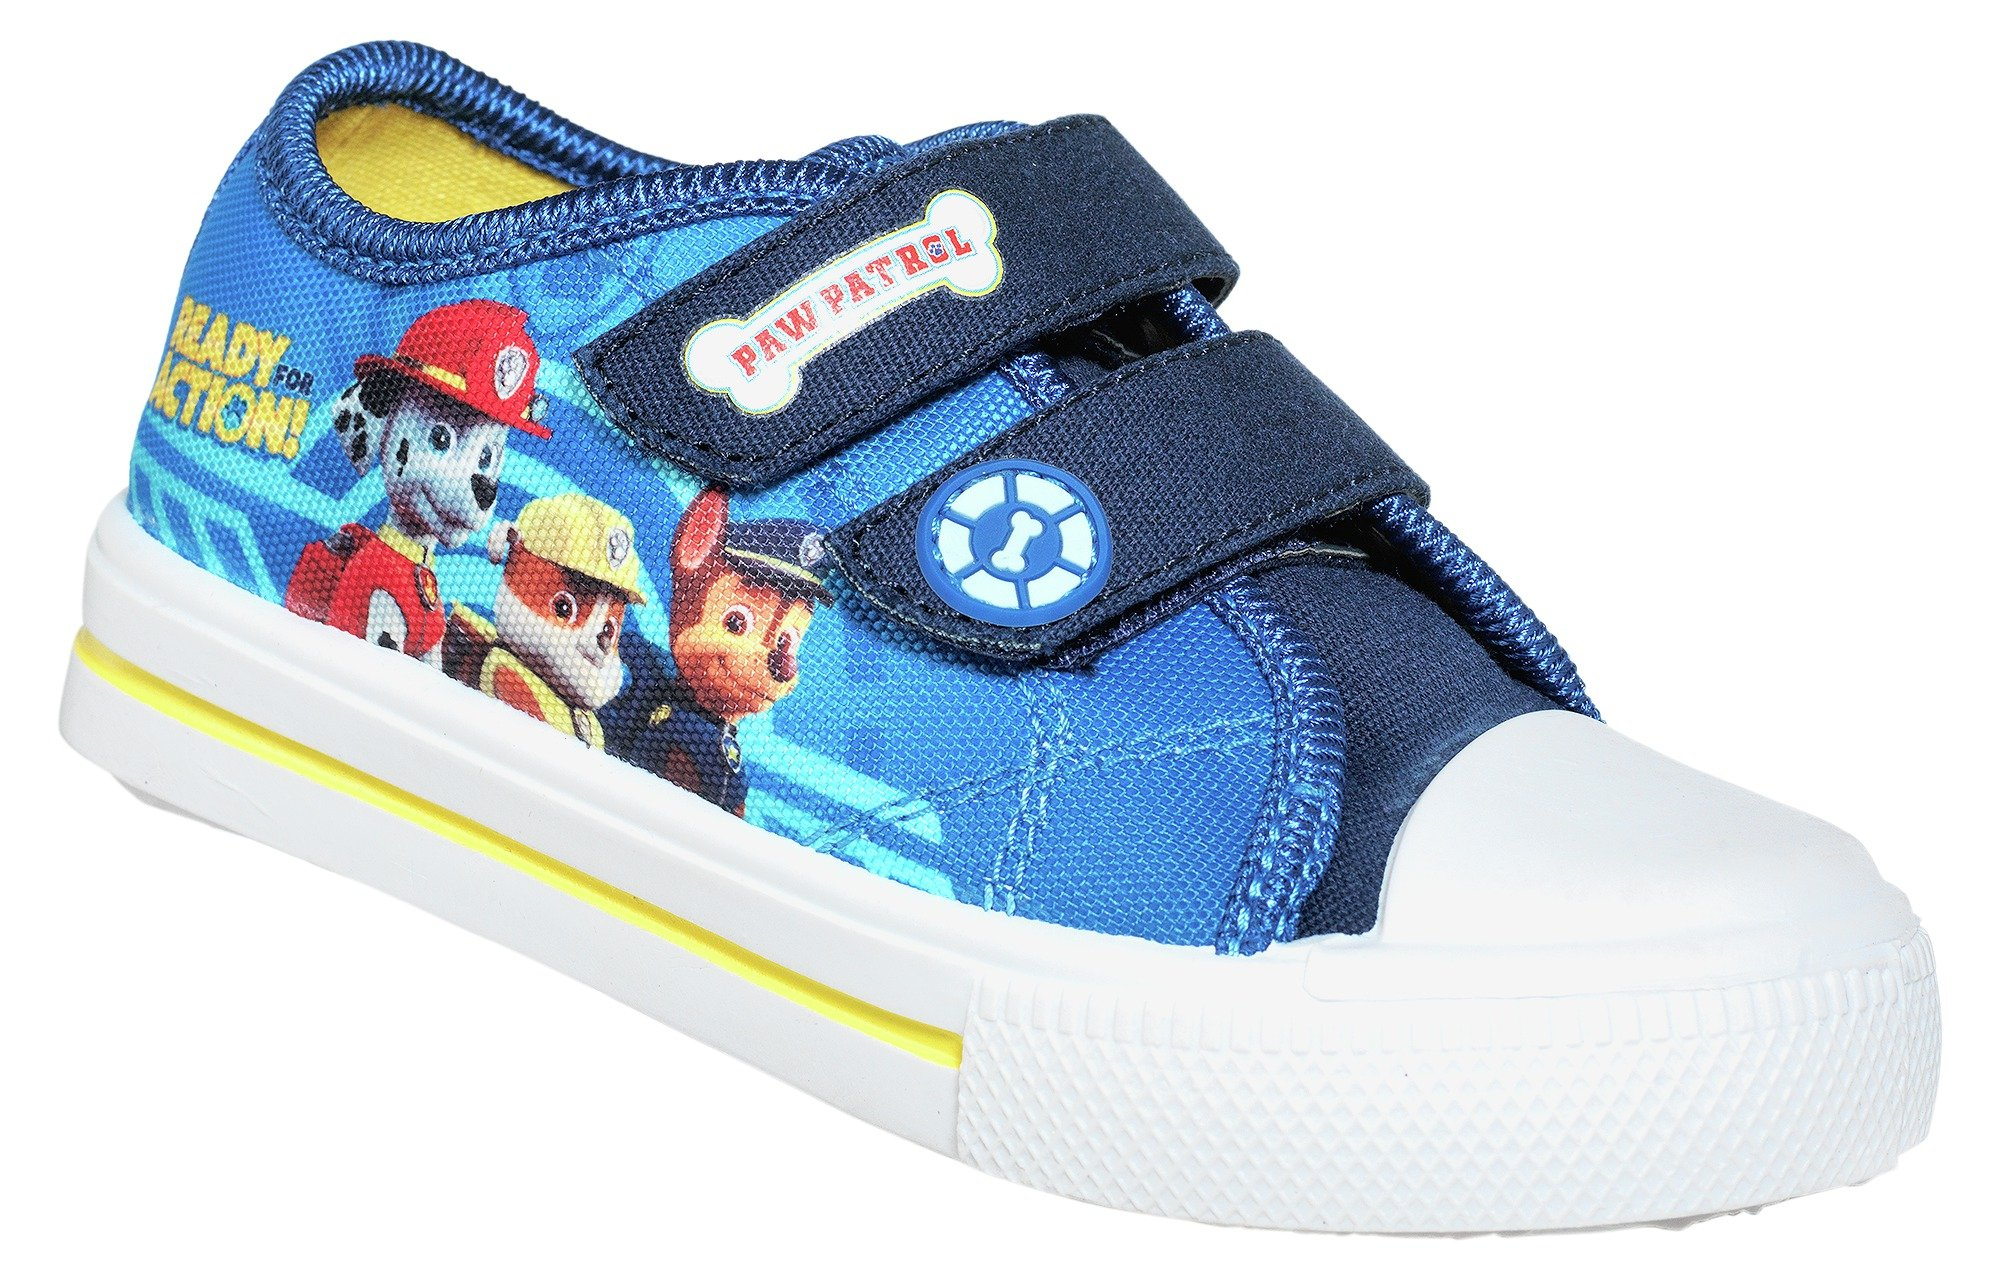 Image of Paw Patrol - Boys Blue Canvas Trainers - Size 7